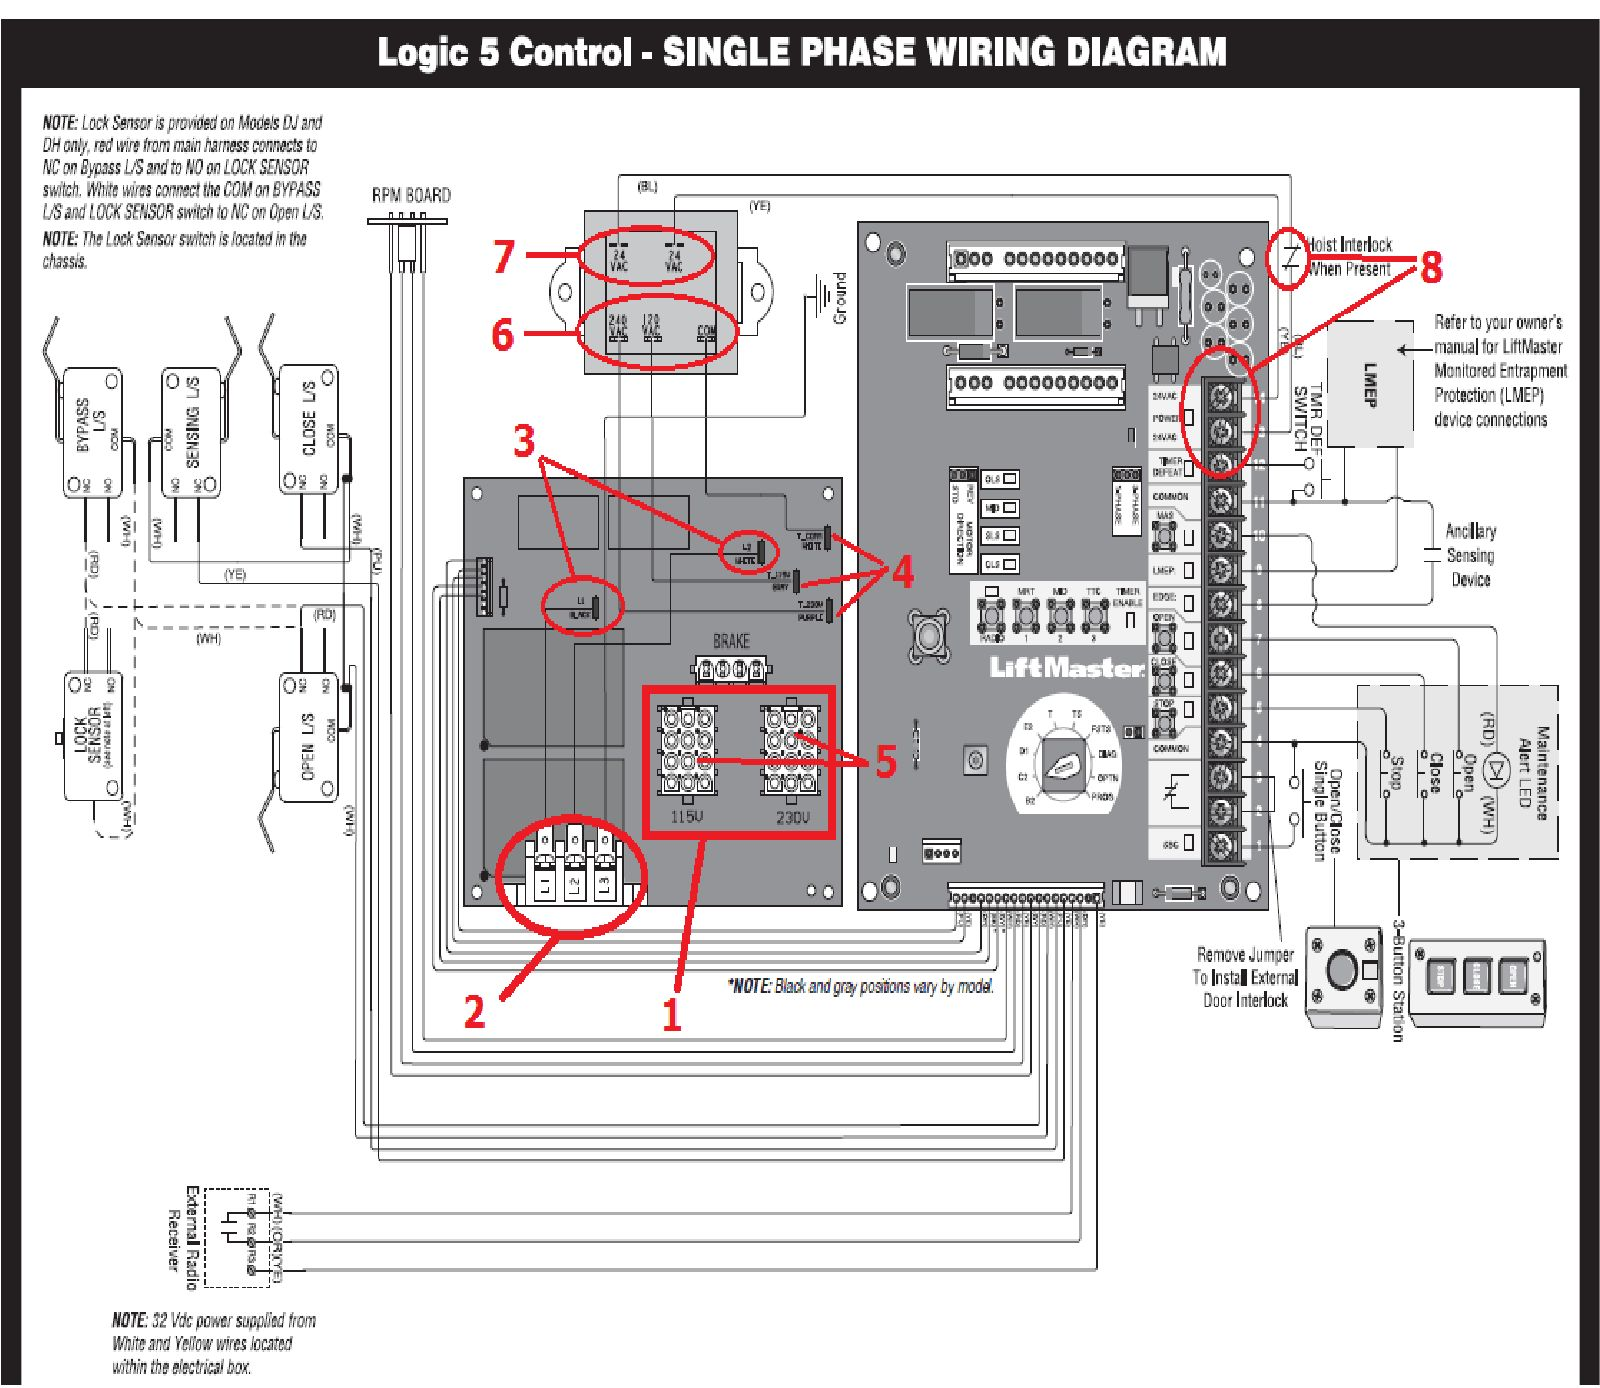 How to test a single phase Logic 5.0 commercial door operator when it does  not power up | LiftMaster Partner Portal Support CenterLiftMaster Support